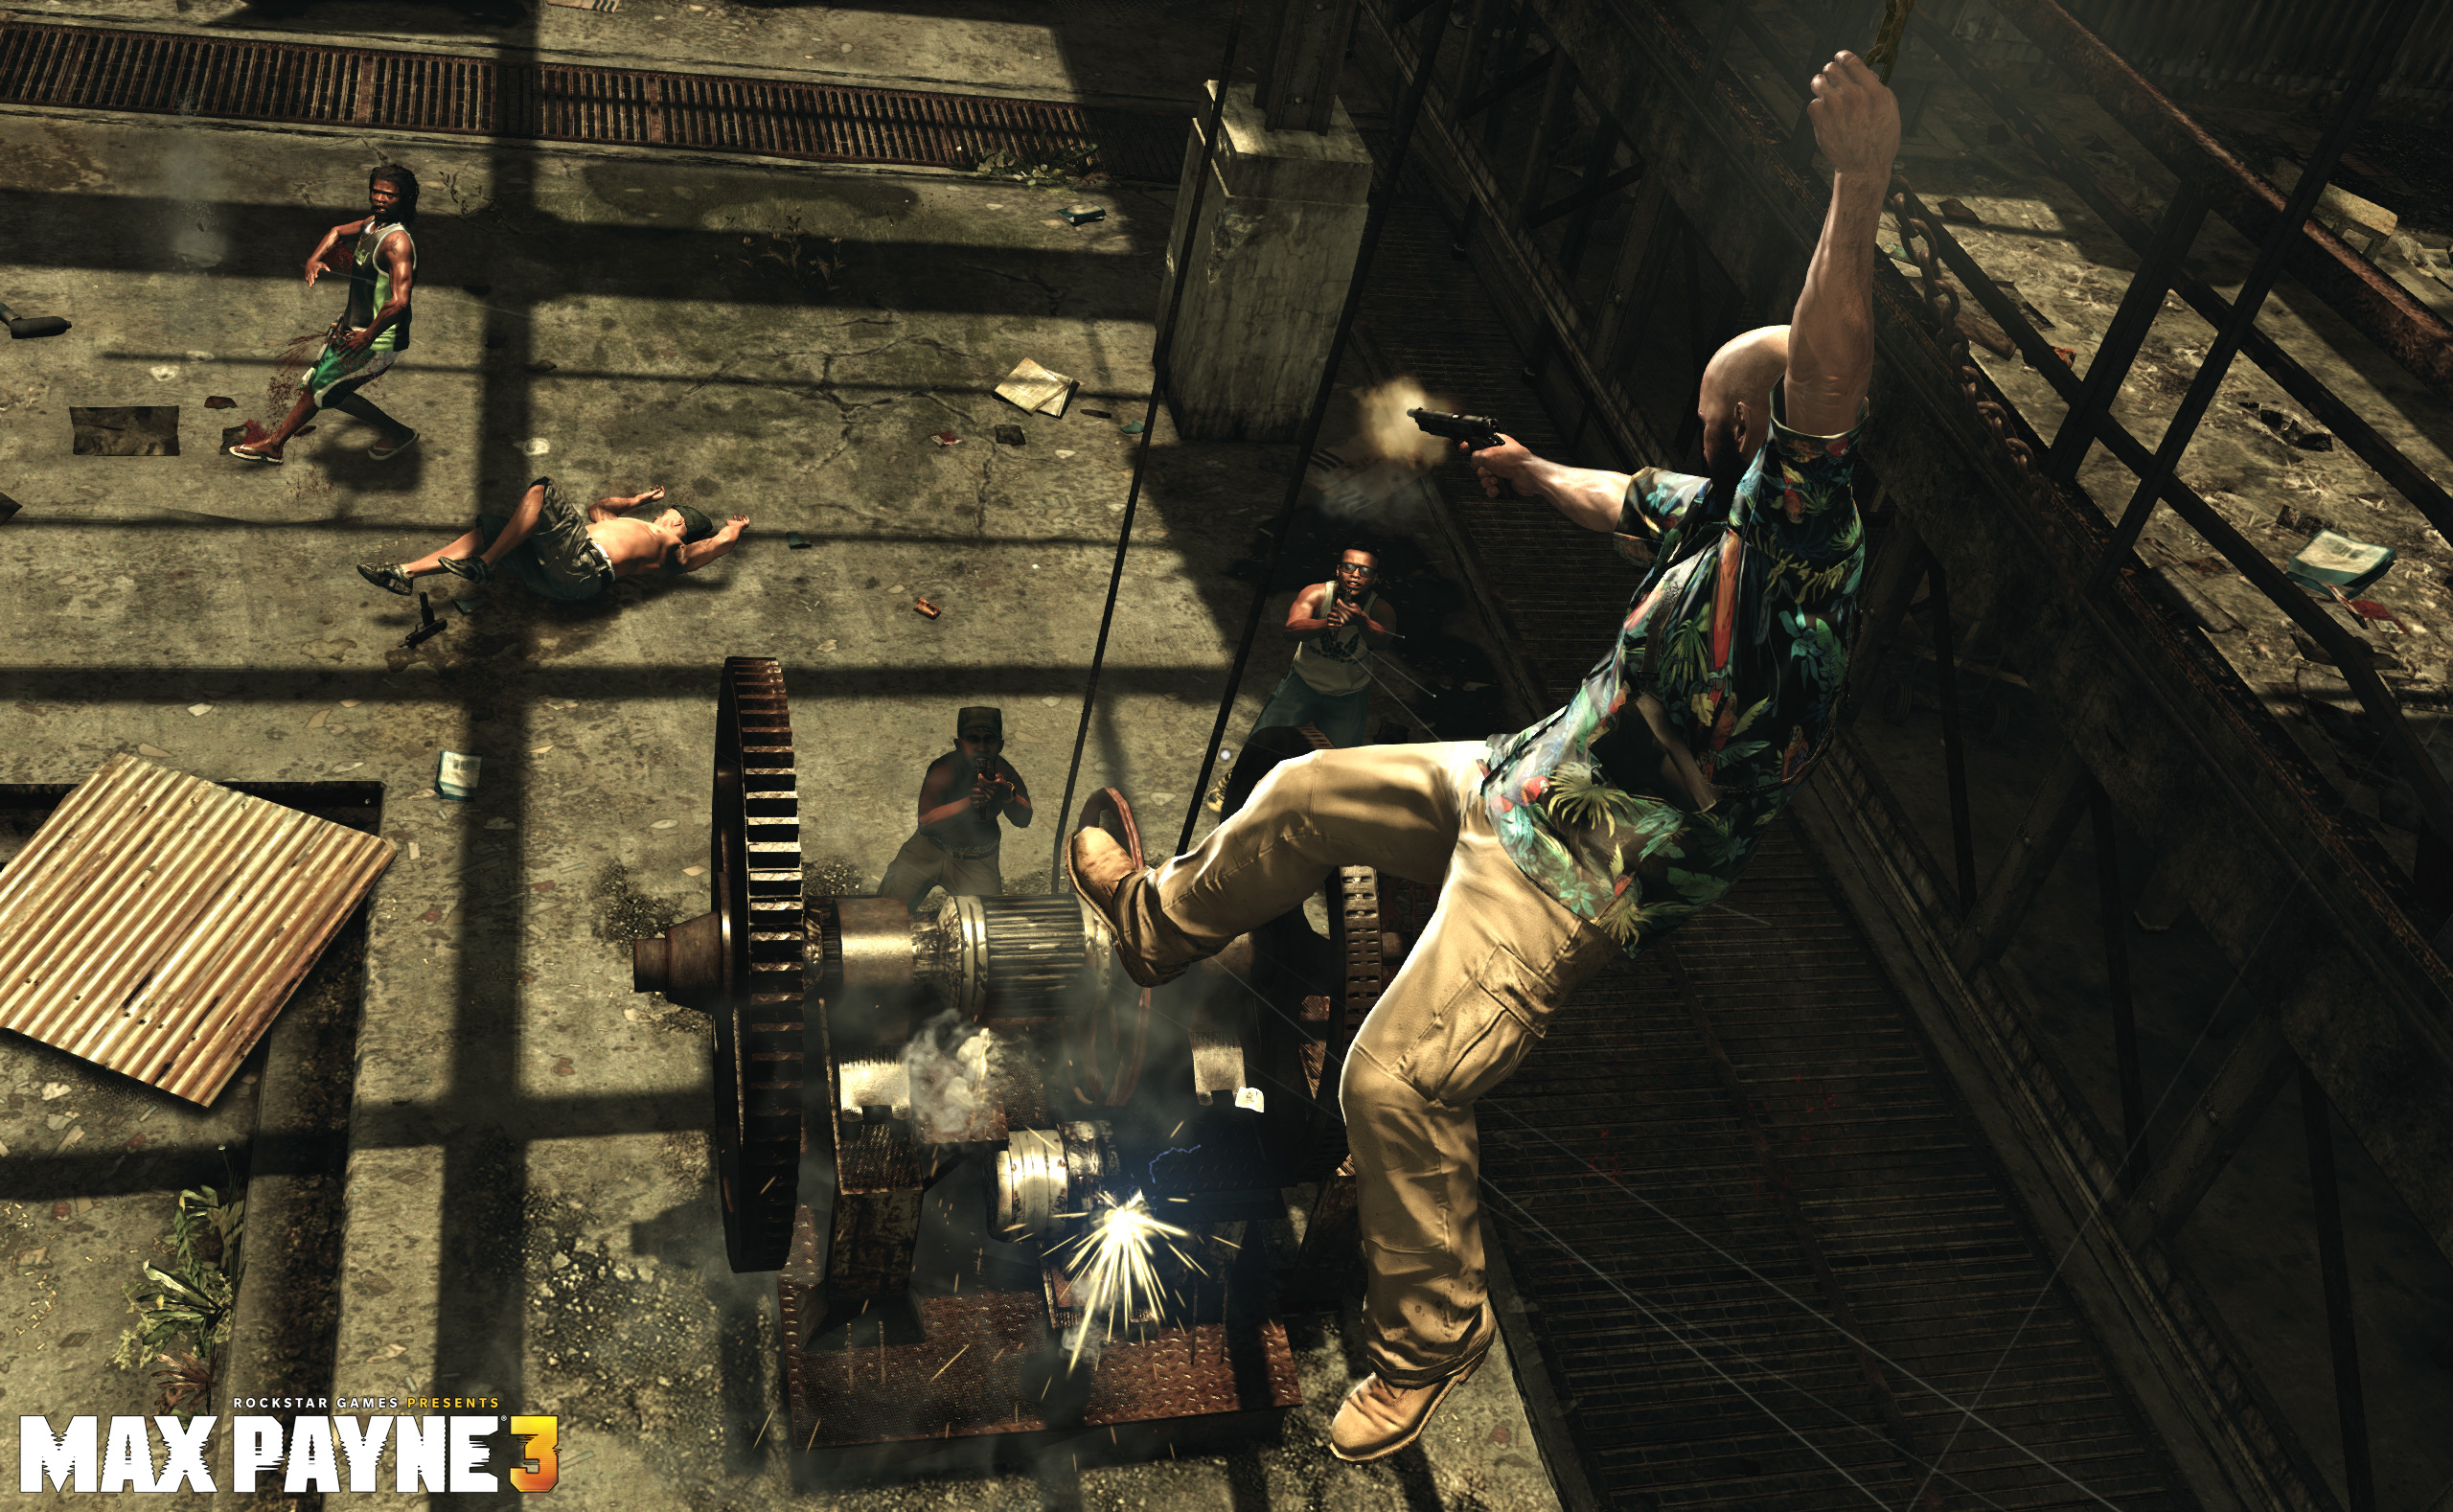 New Max Payne 3 Title Update Available For Ps3 And Xbox 360 Just